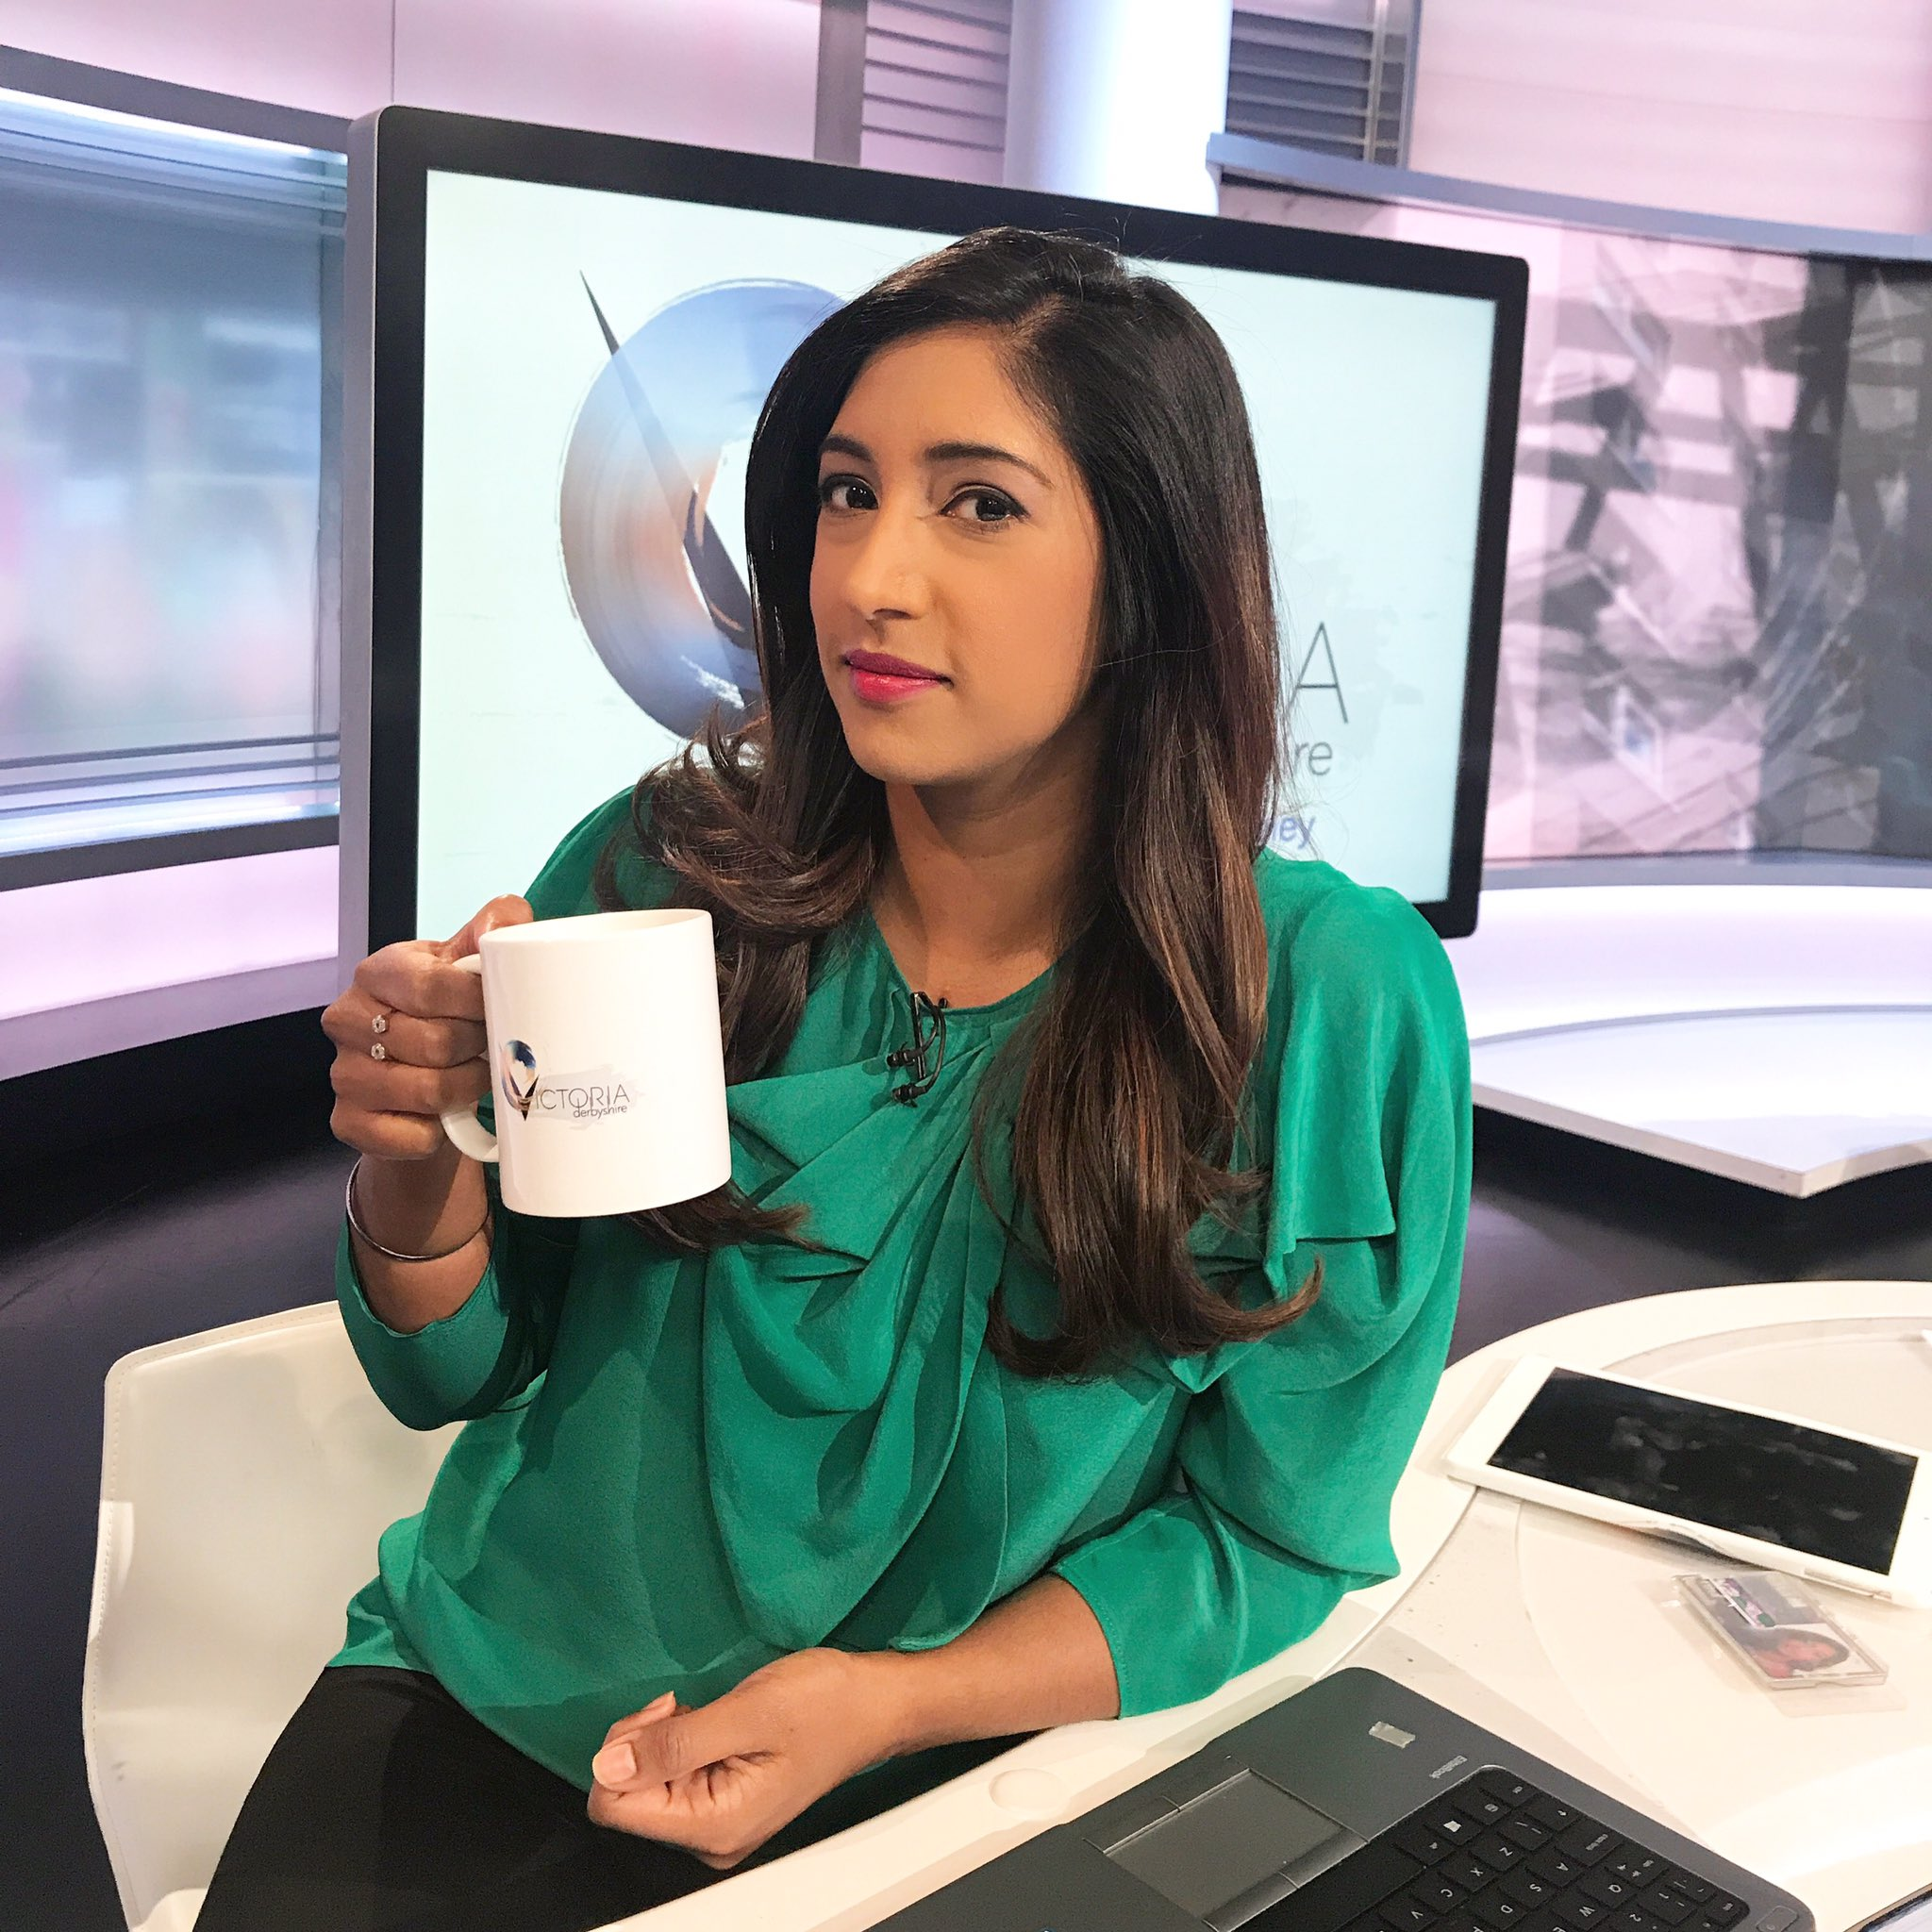 Just the one mug @VictoriaLIVE today. But will there be more? Find out from 9am @BBCTwo and @bbcnews channel. https://t.co/UqVnUgaqOS